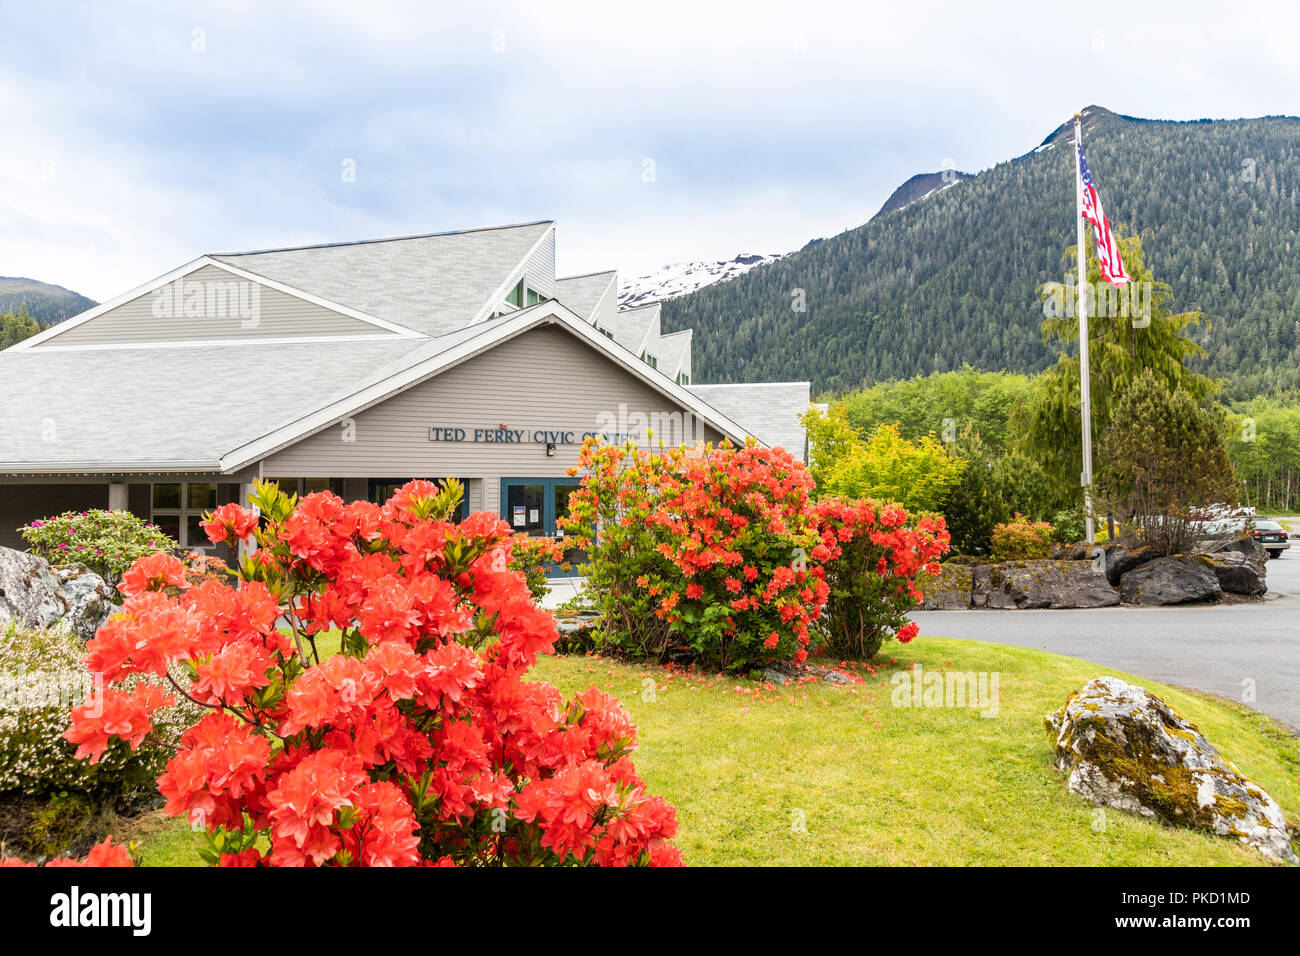 The Ted Ferry Civic Center in Ketchikan, Alaska USA - Stock Image